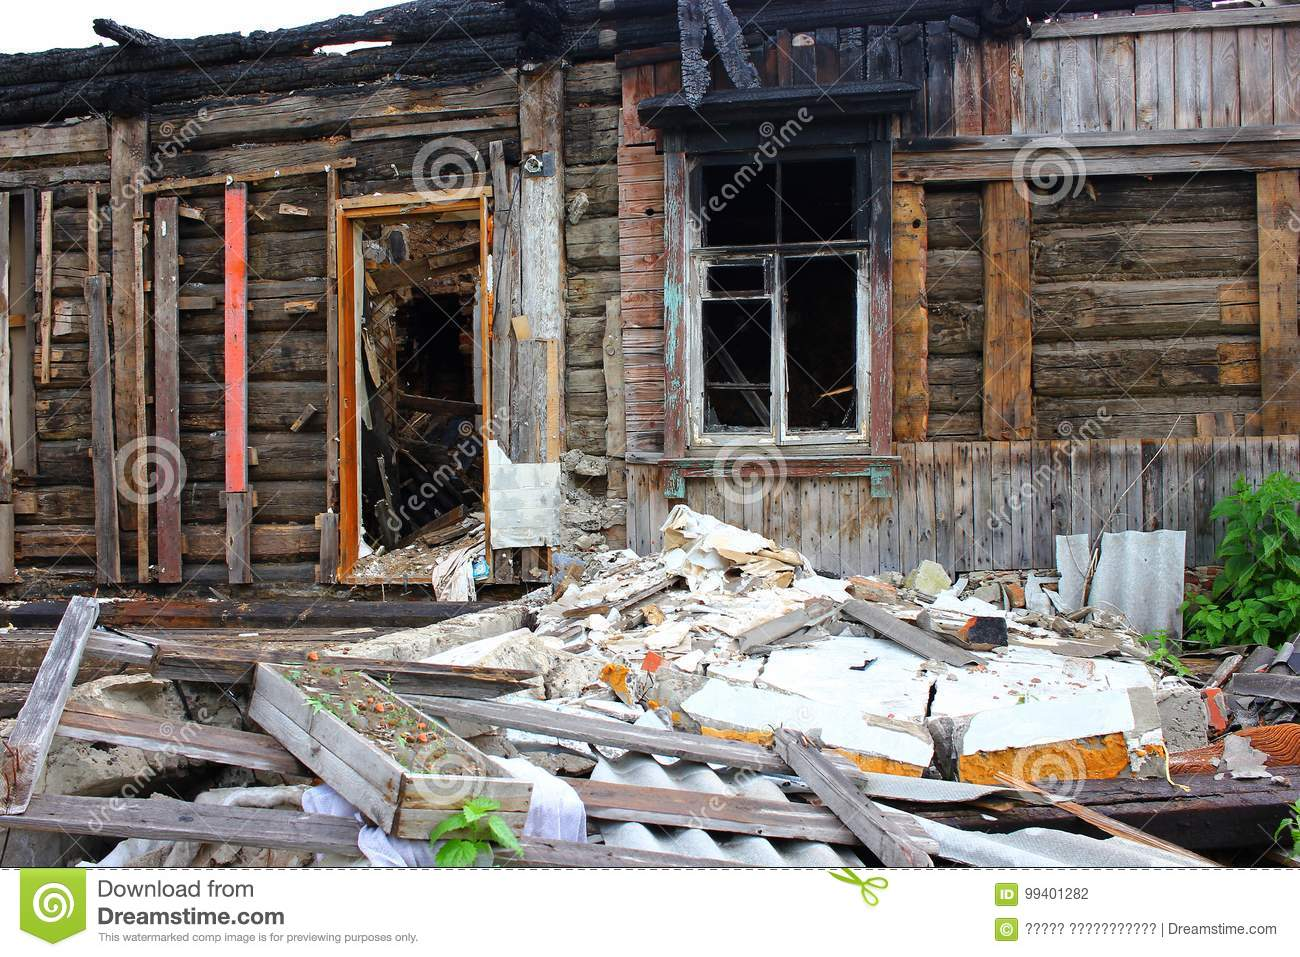 War Destroyed  Burned Down Wooden House  Charred Walls  Stock Photo